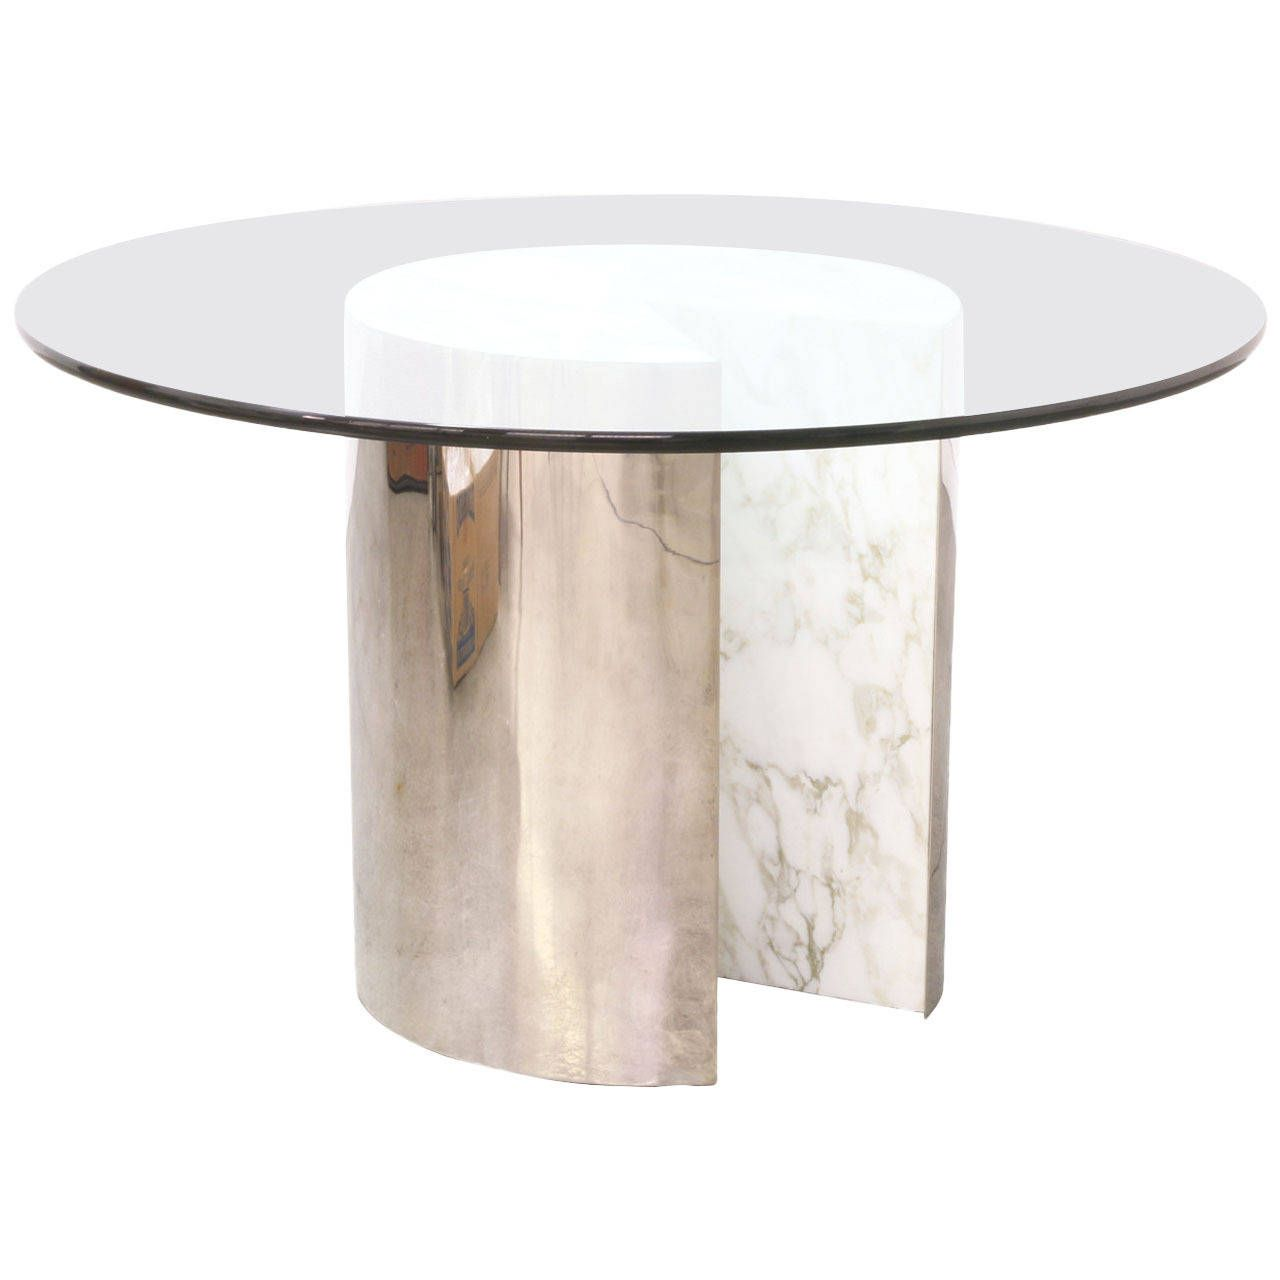 vintage stainless steel and carrera marble dining table with glass rh pinterest com